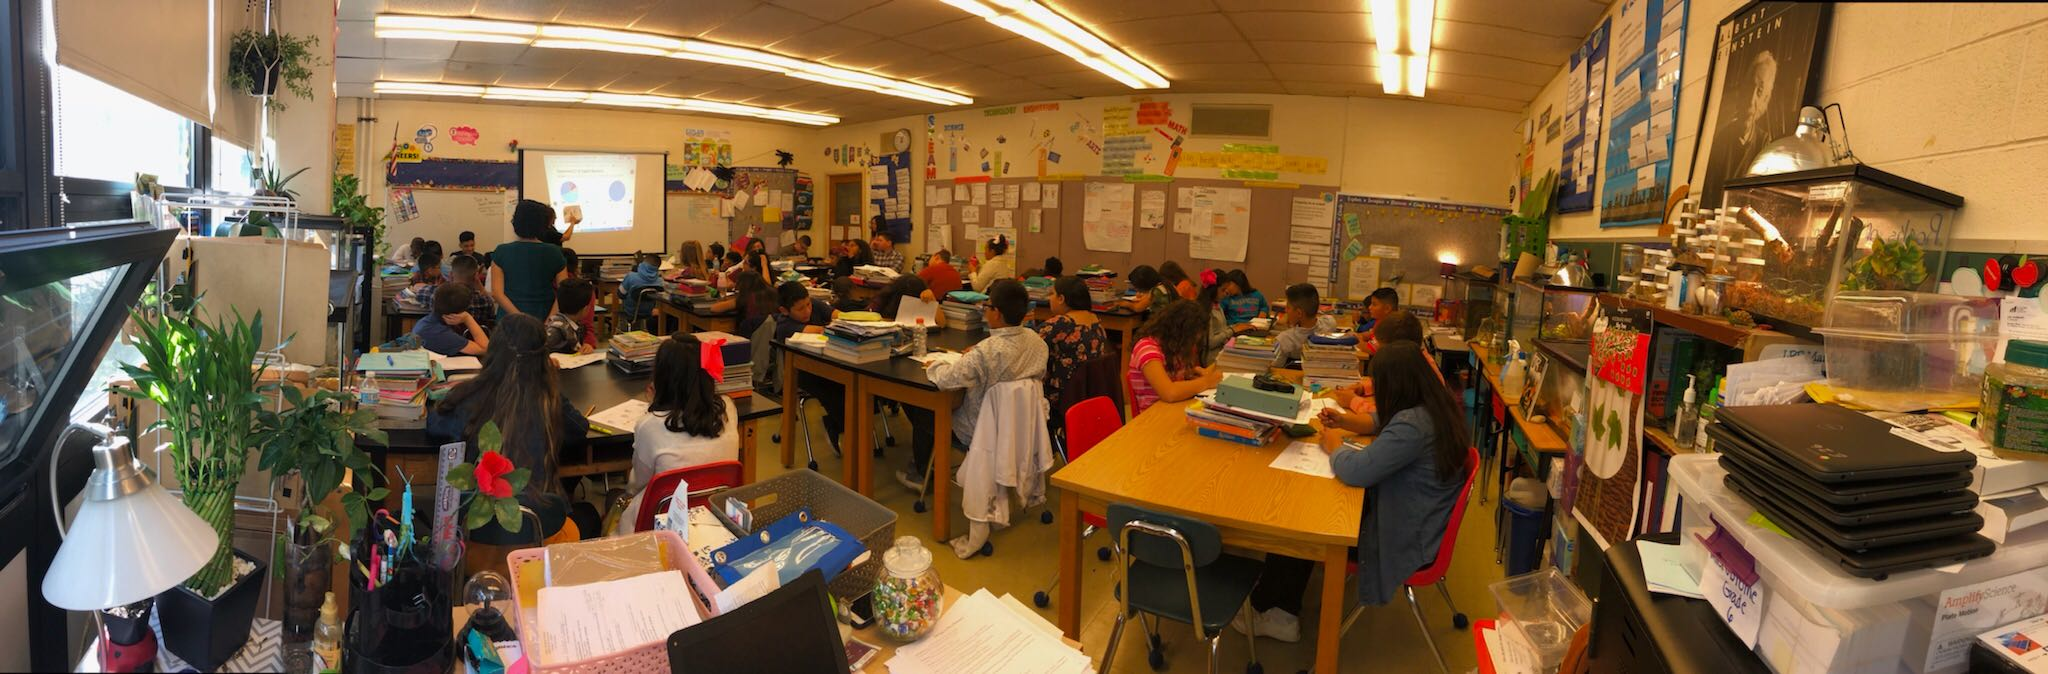 A classroom with 45 students at Grissom Elementary in Hegewisch